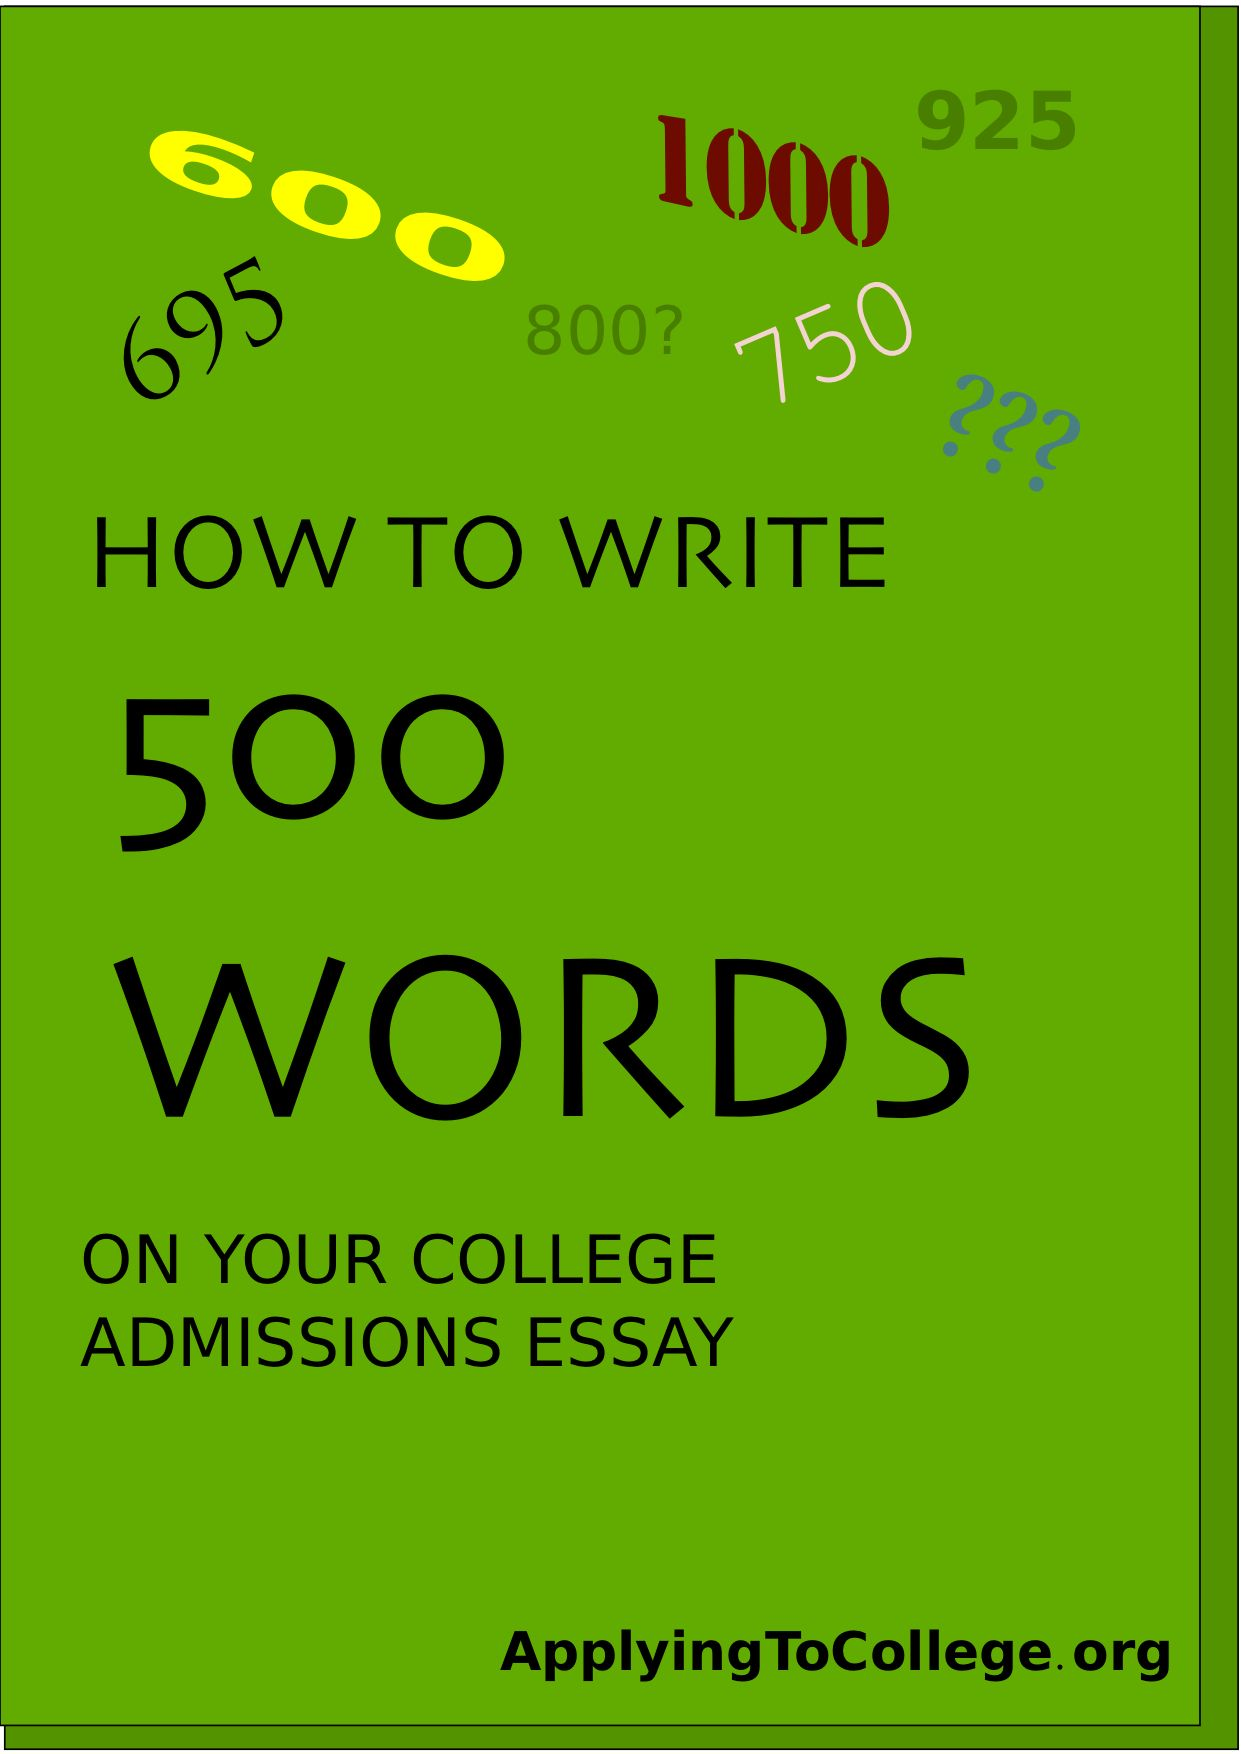 admission essay writing 500 words